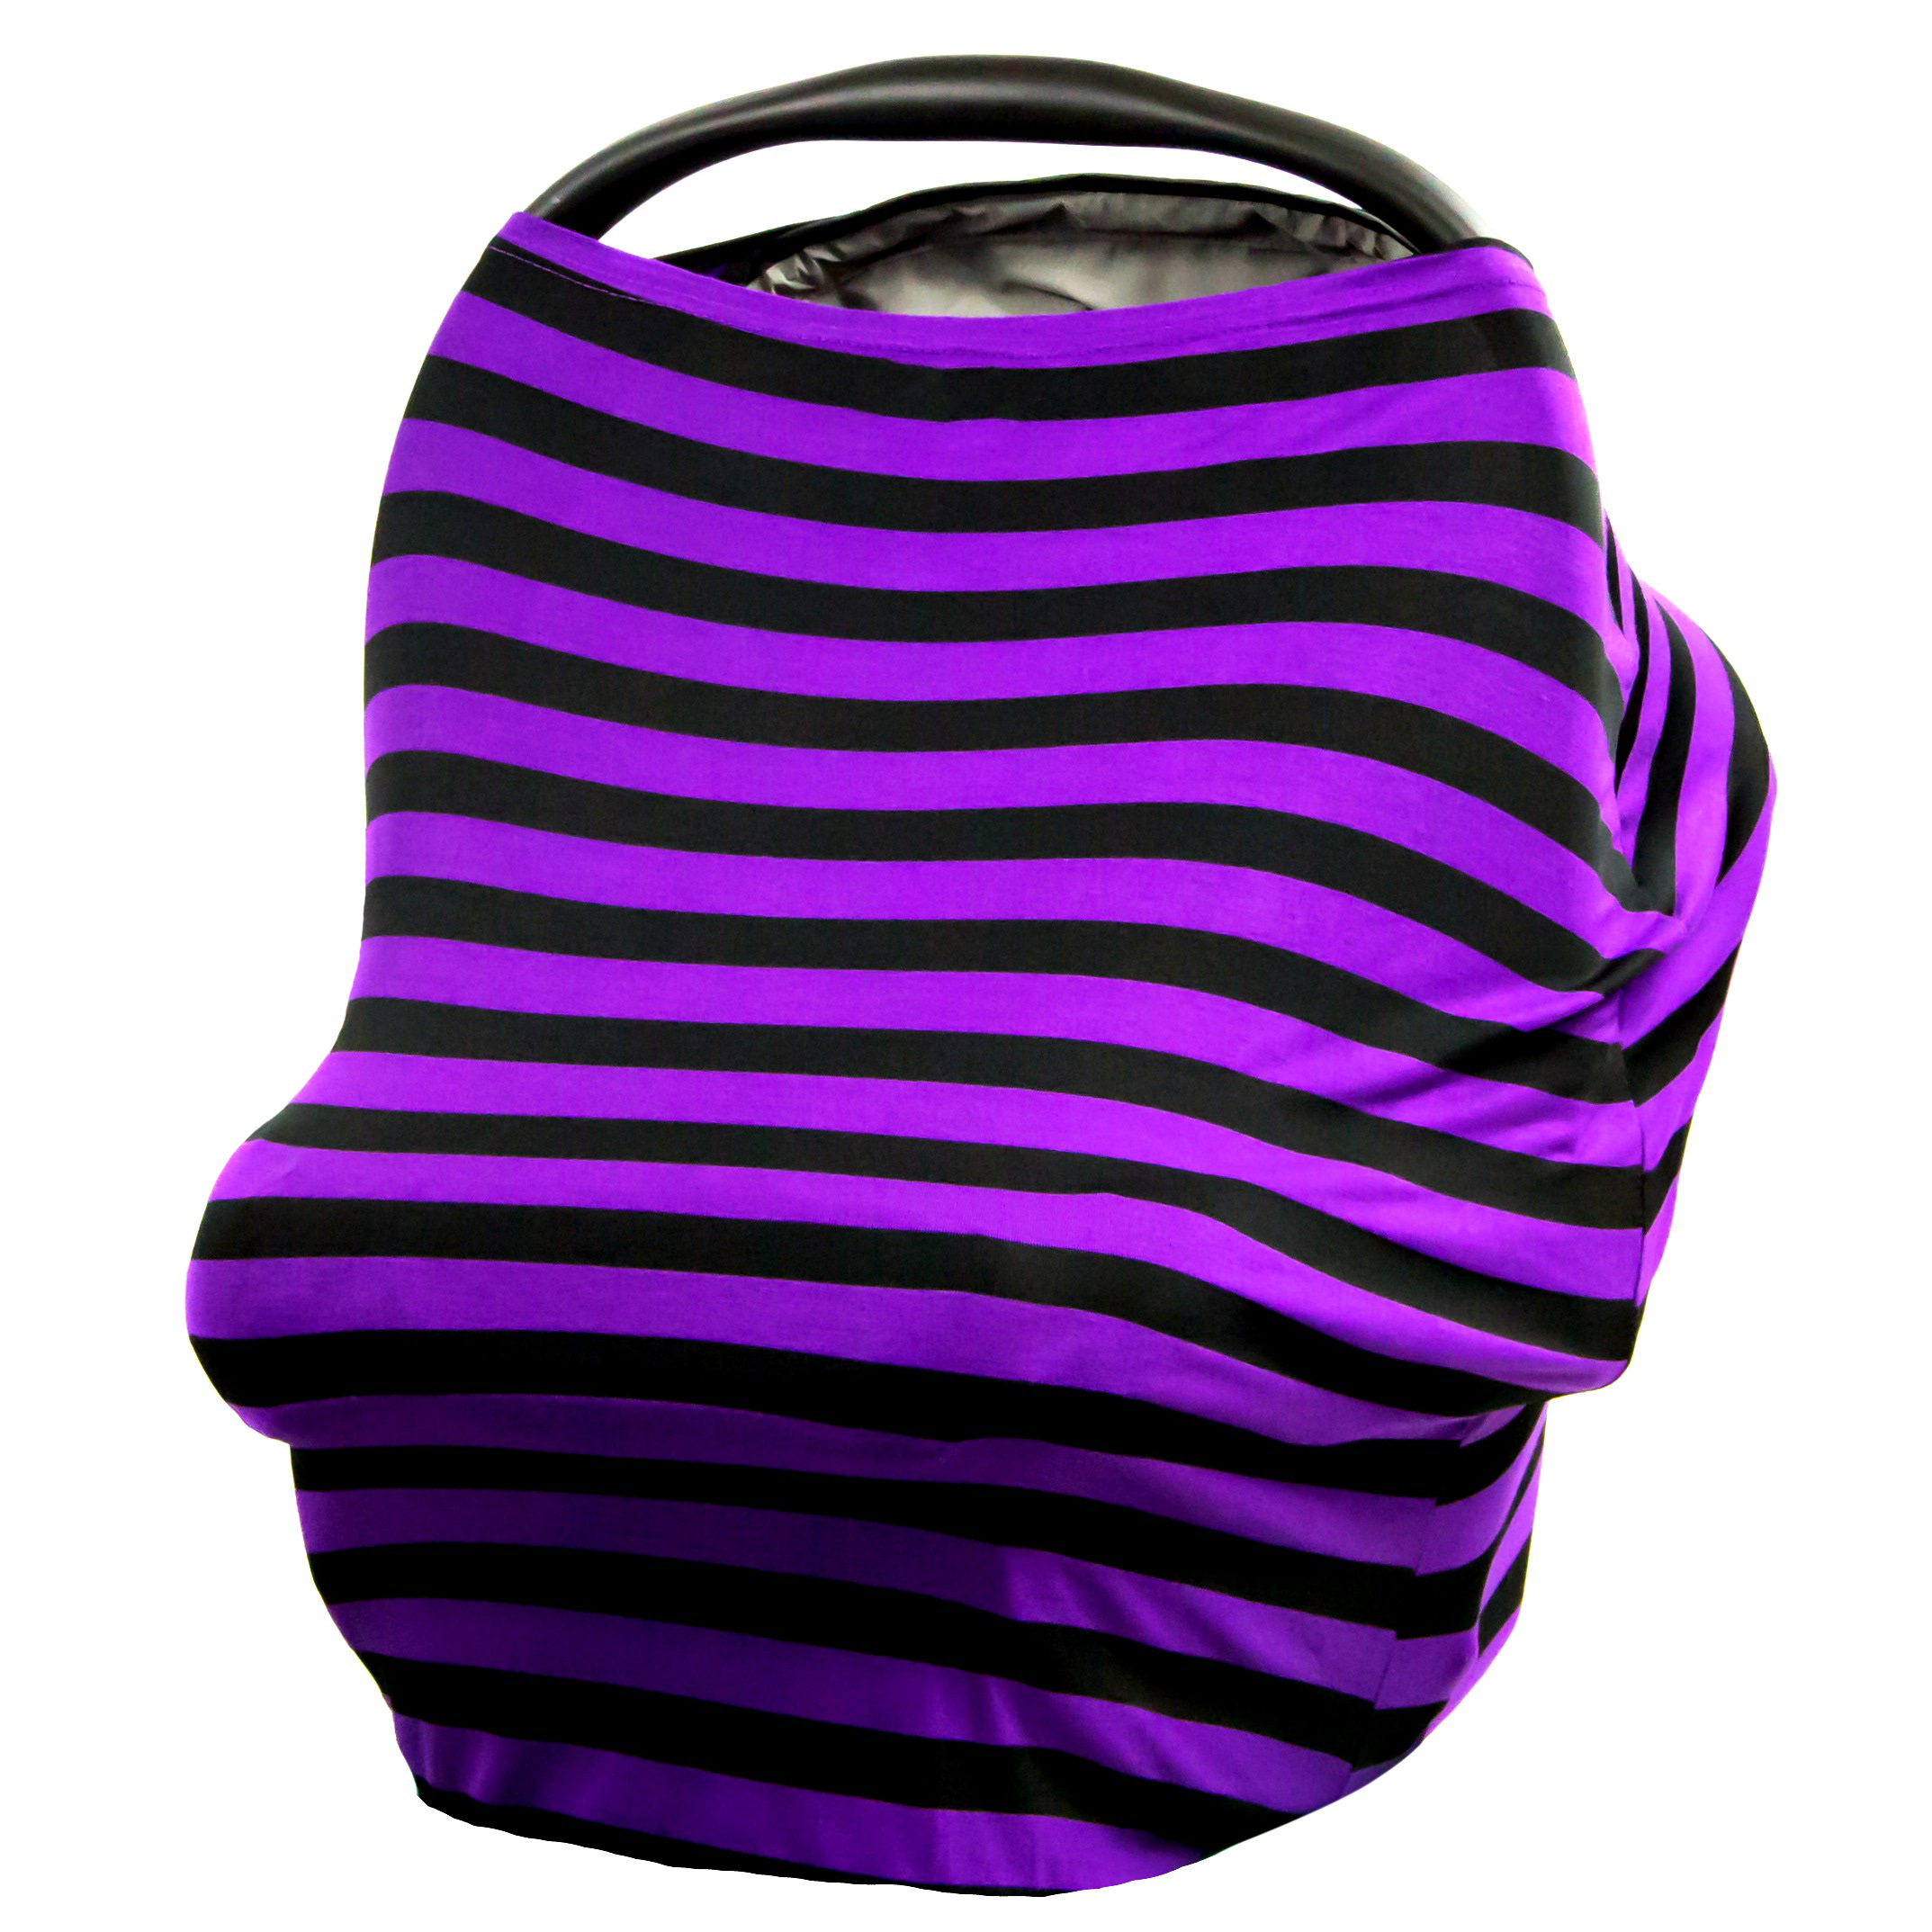 JLIKA Baby Car Seat Canopy Cover and Stretchy Nursing Cover - Purple Black Stripe